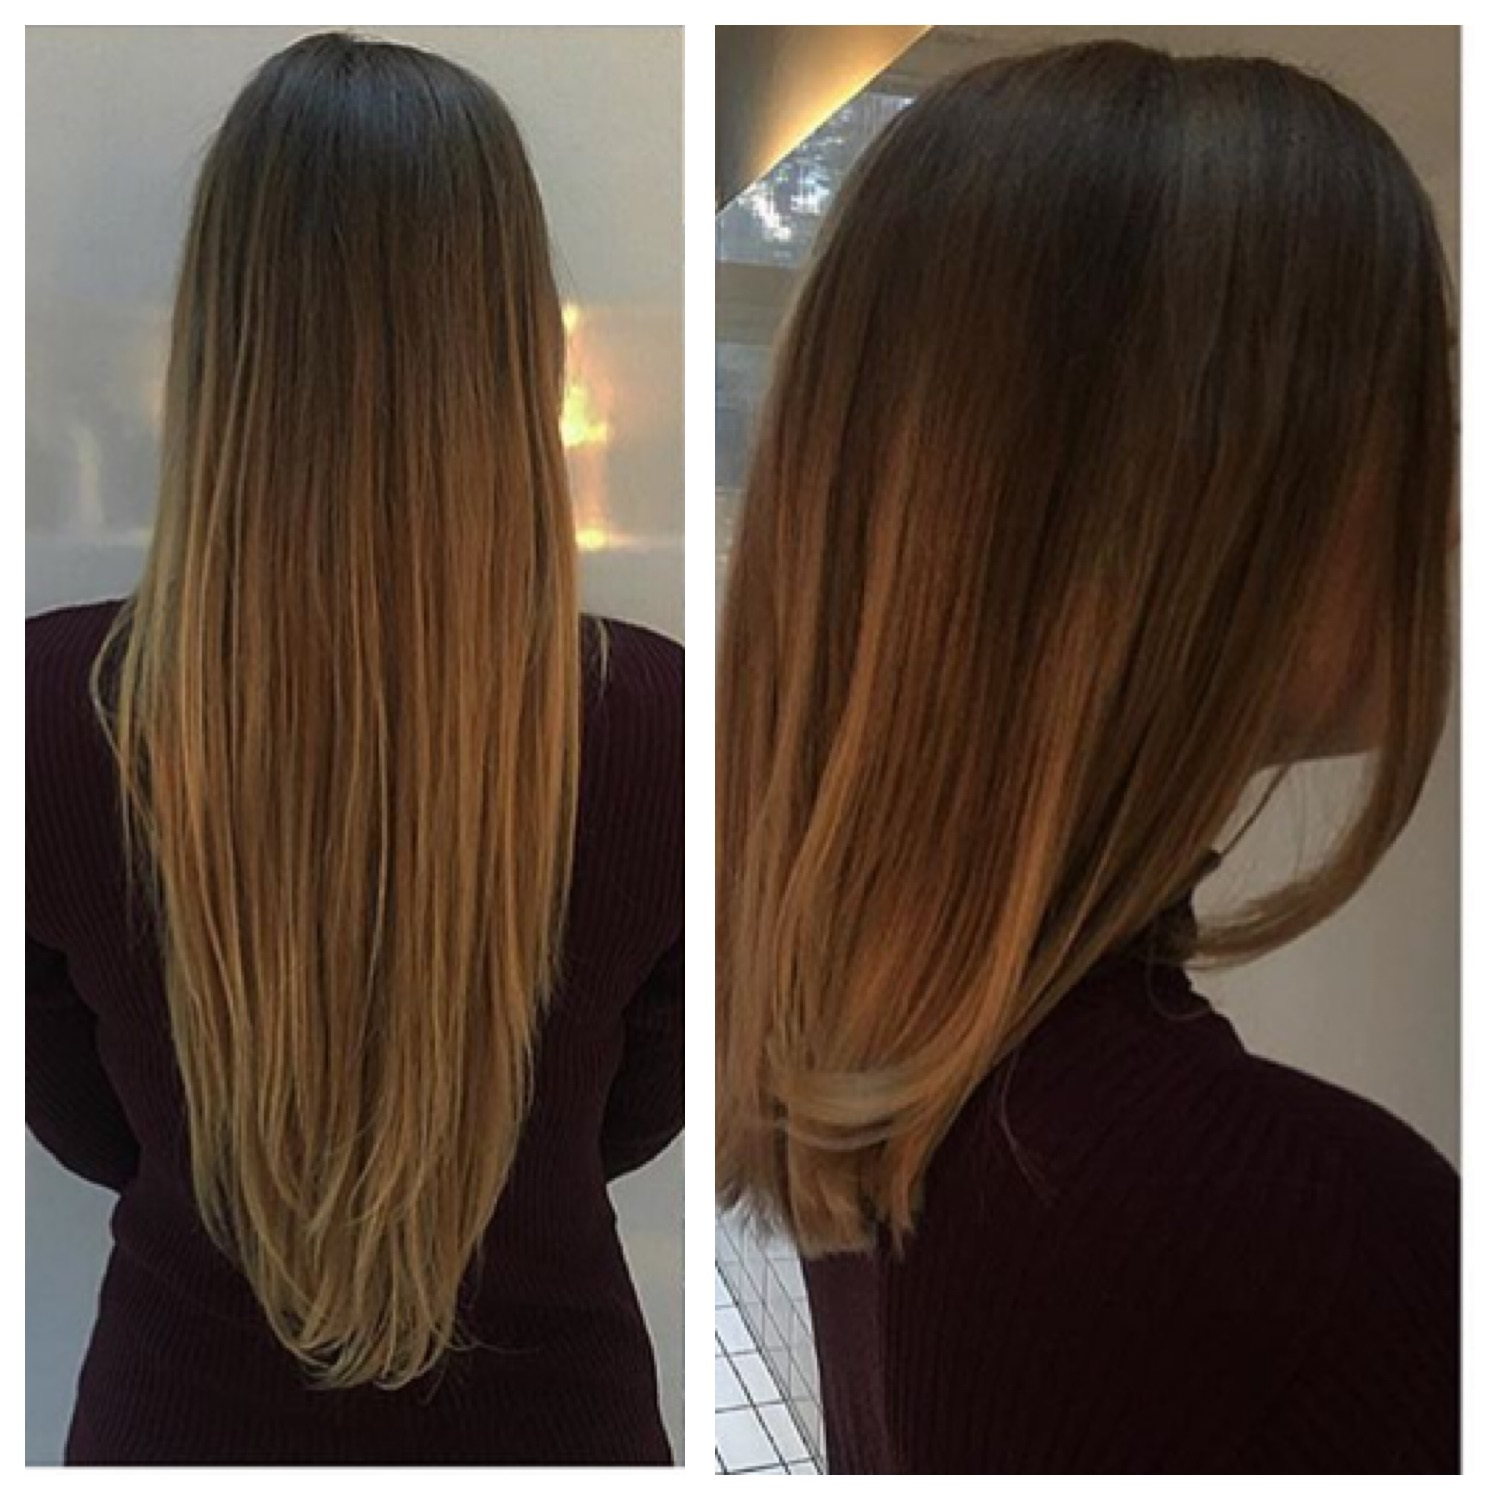 1bf2805d03ba Long straight hair being cut into an off the shoulders length with long  layers by Yasmin